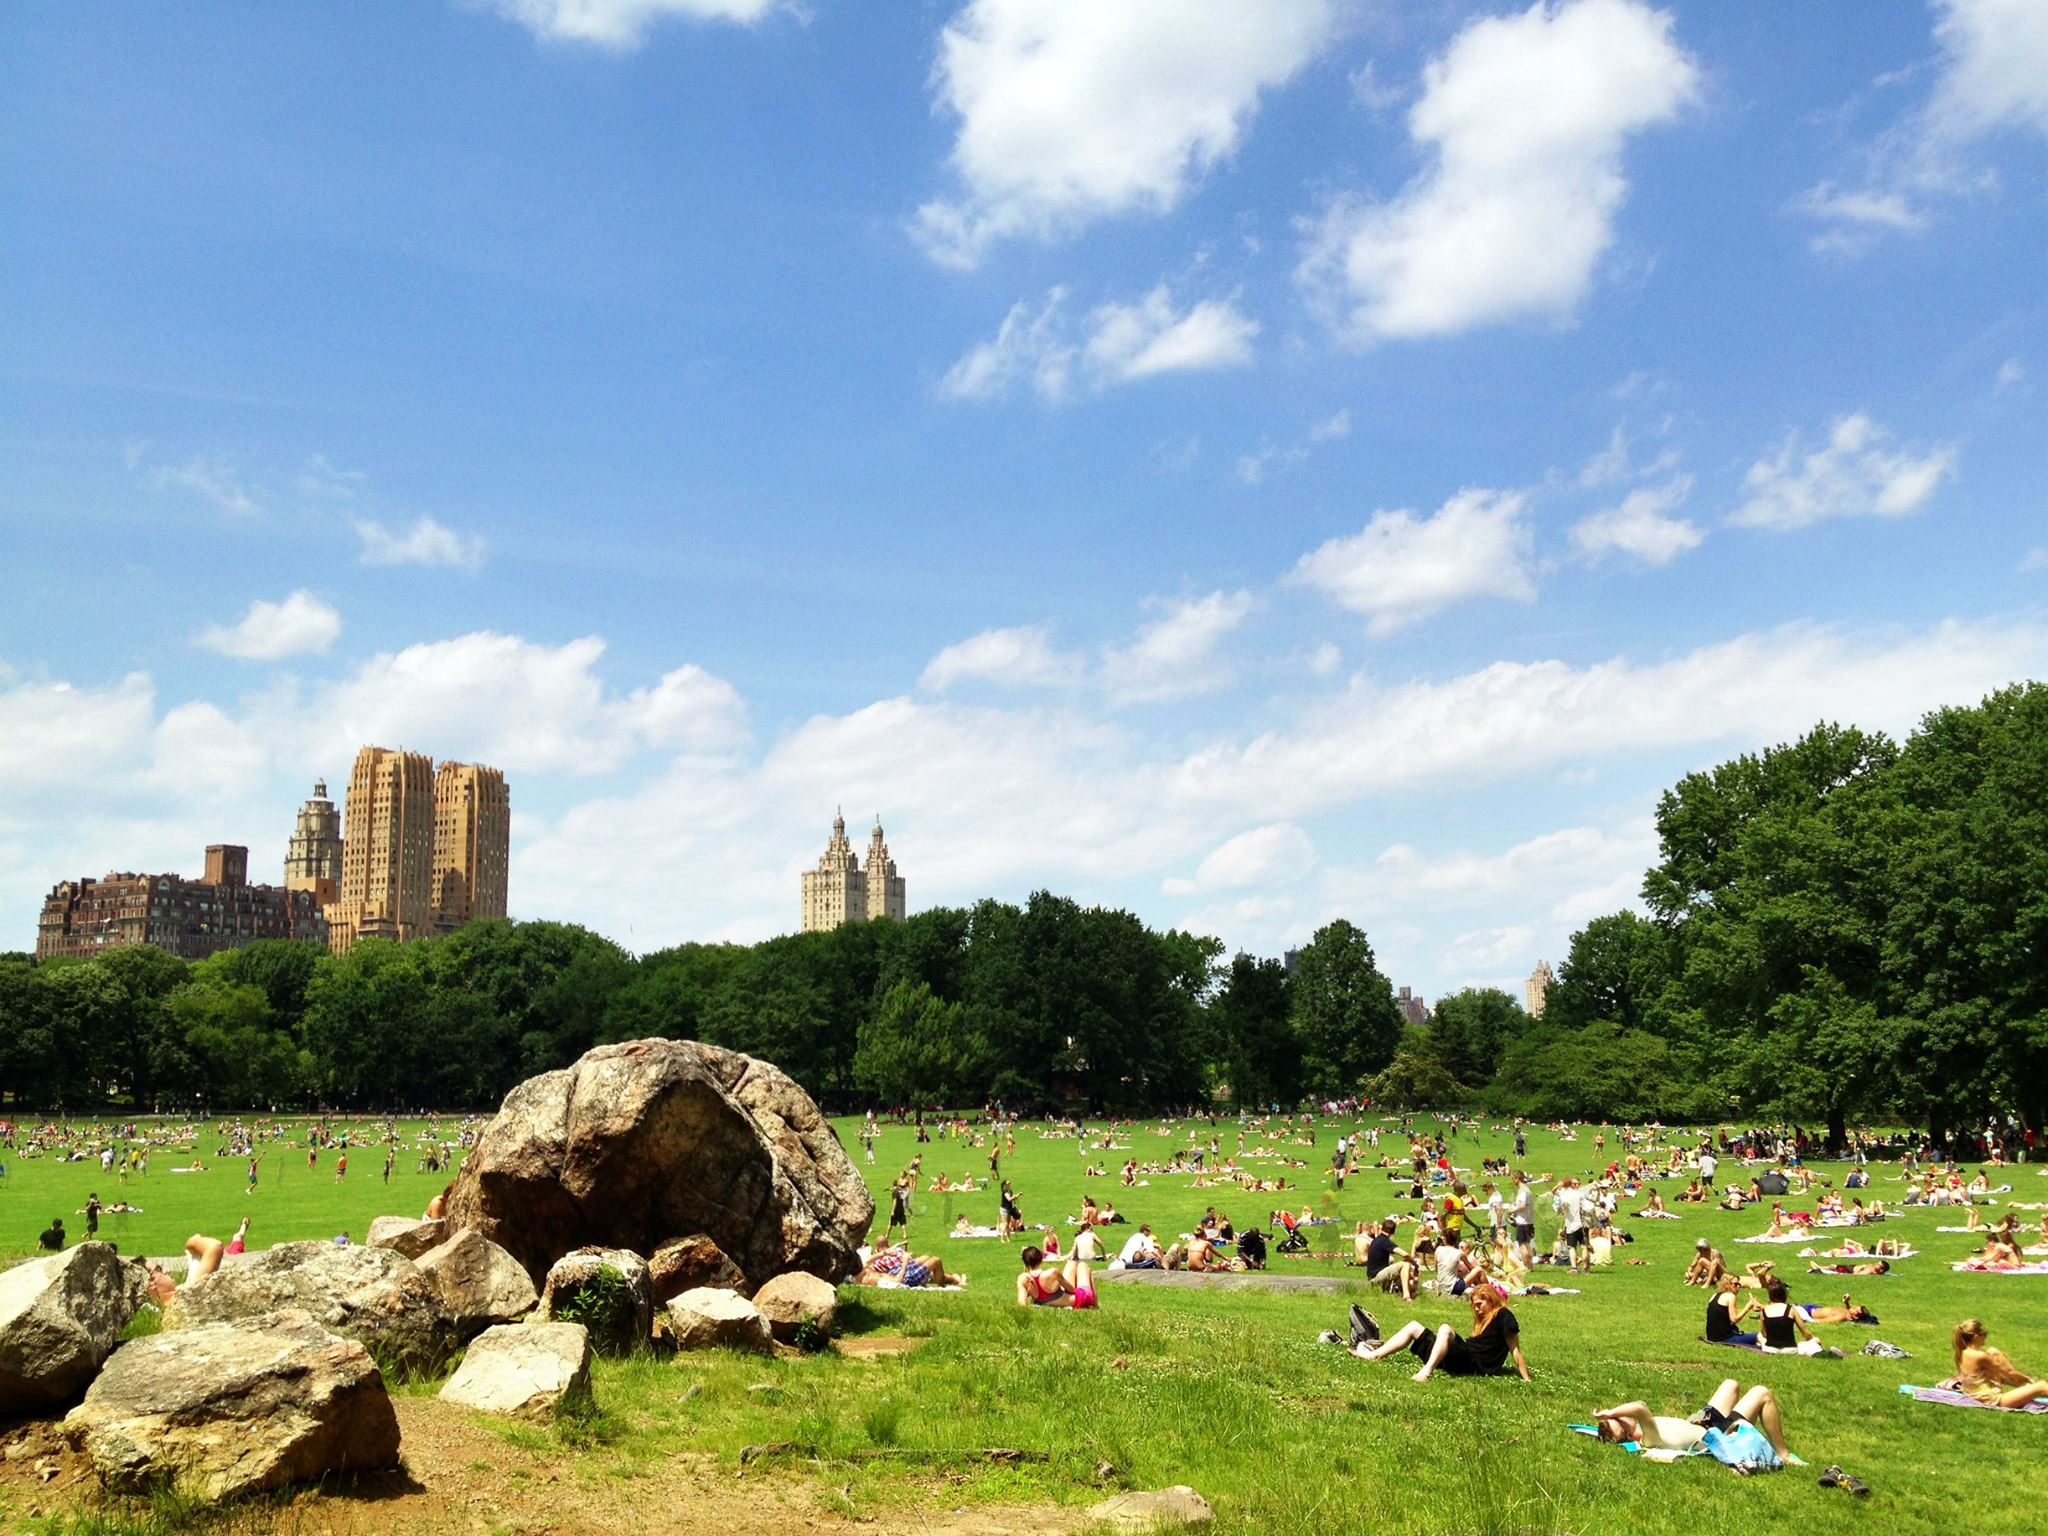 Central Park is one of the unmissible places to go in New York